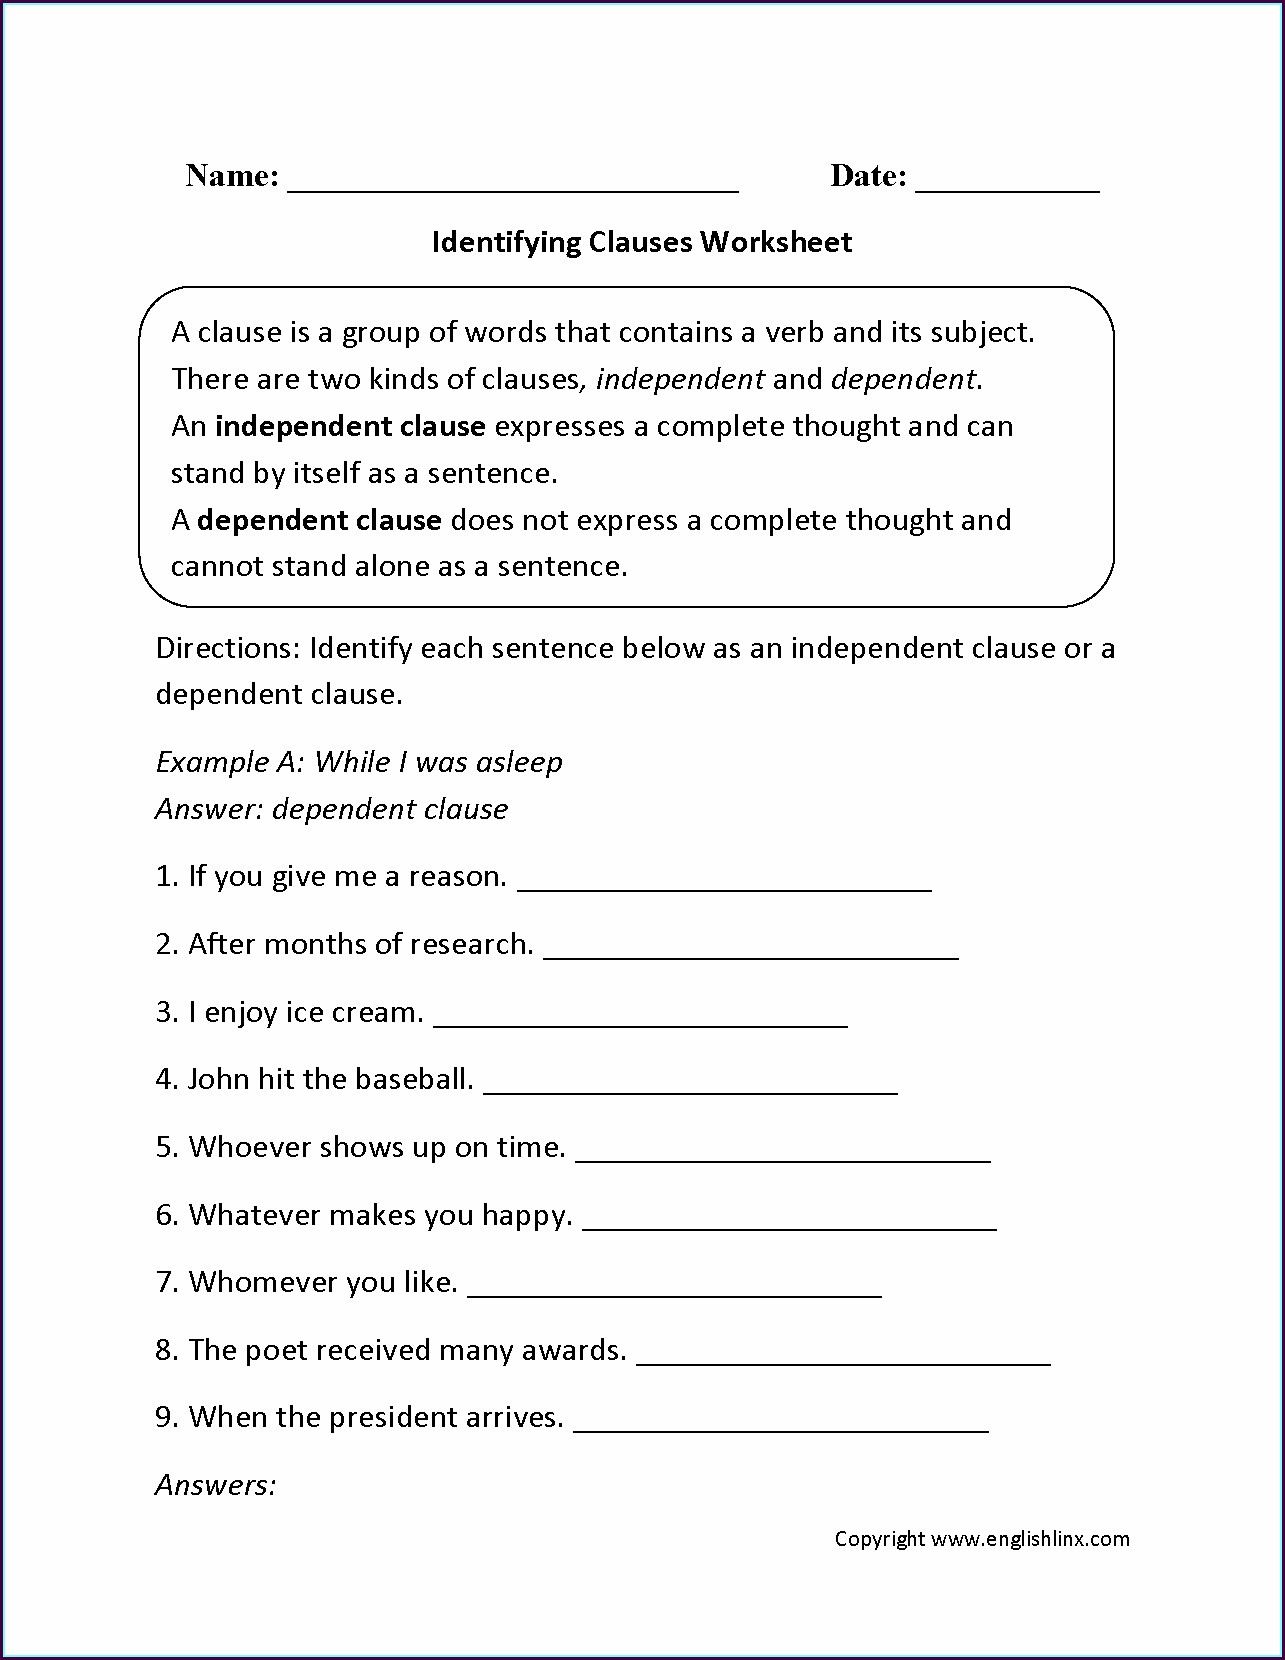 Grade 9 9th Grade English Worksheets Pdf